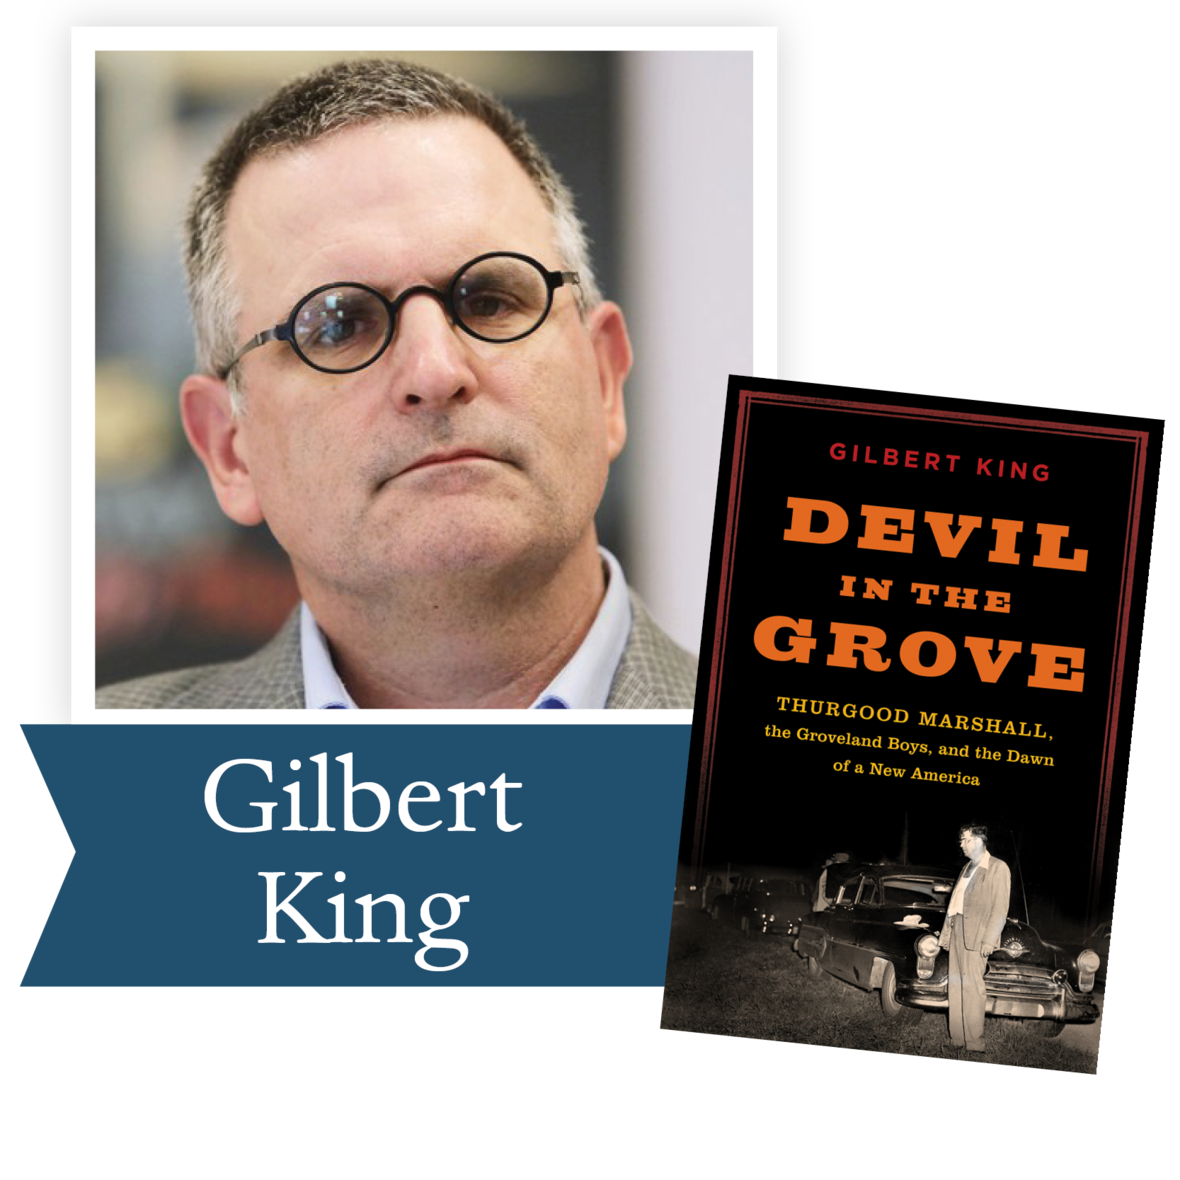 gilbert king devil in the grove